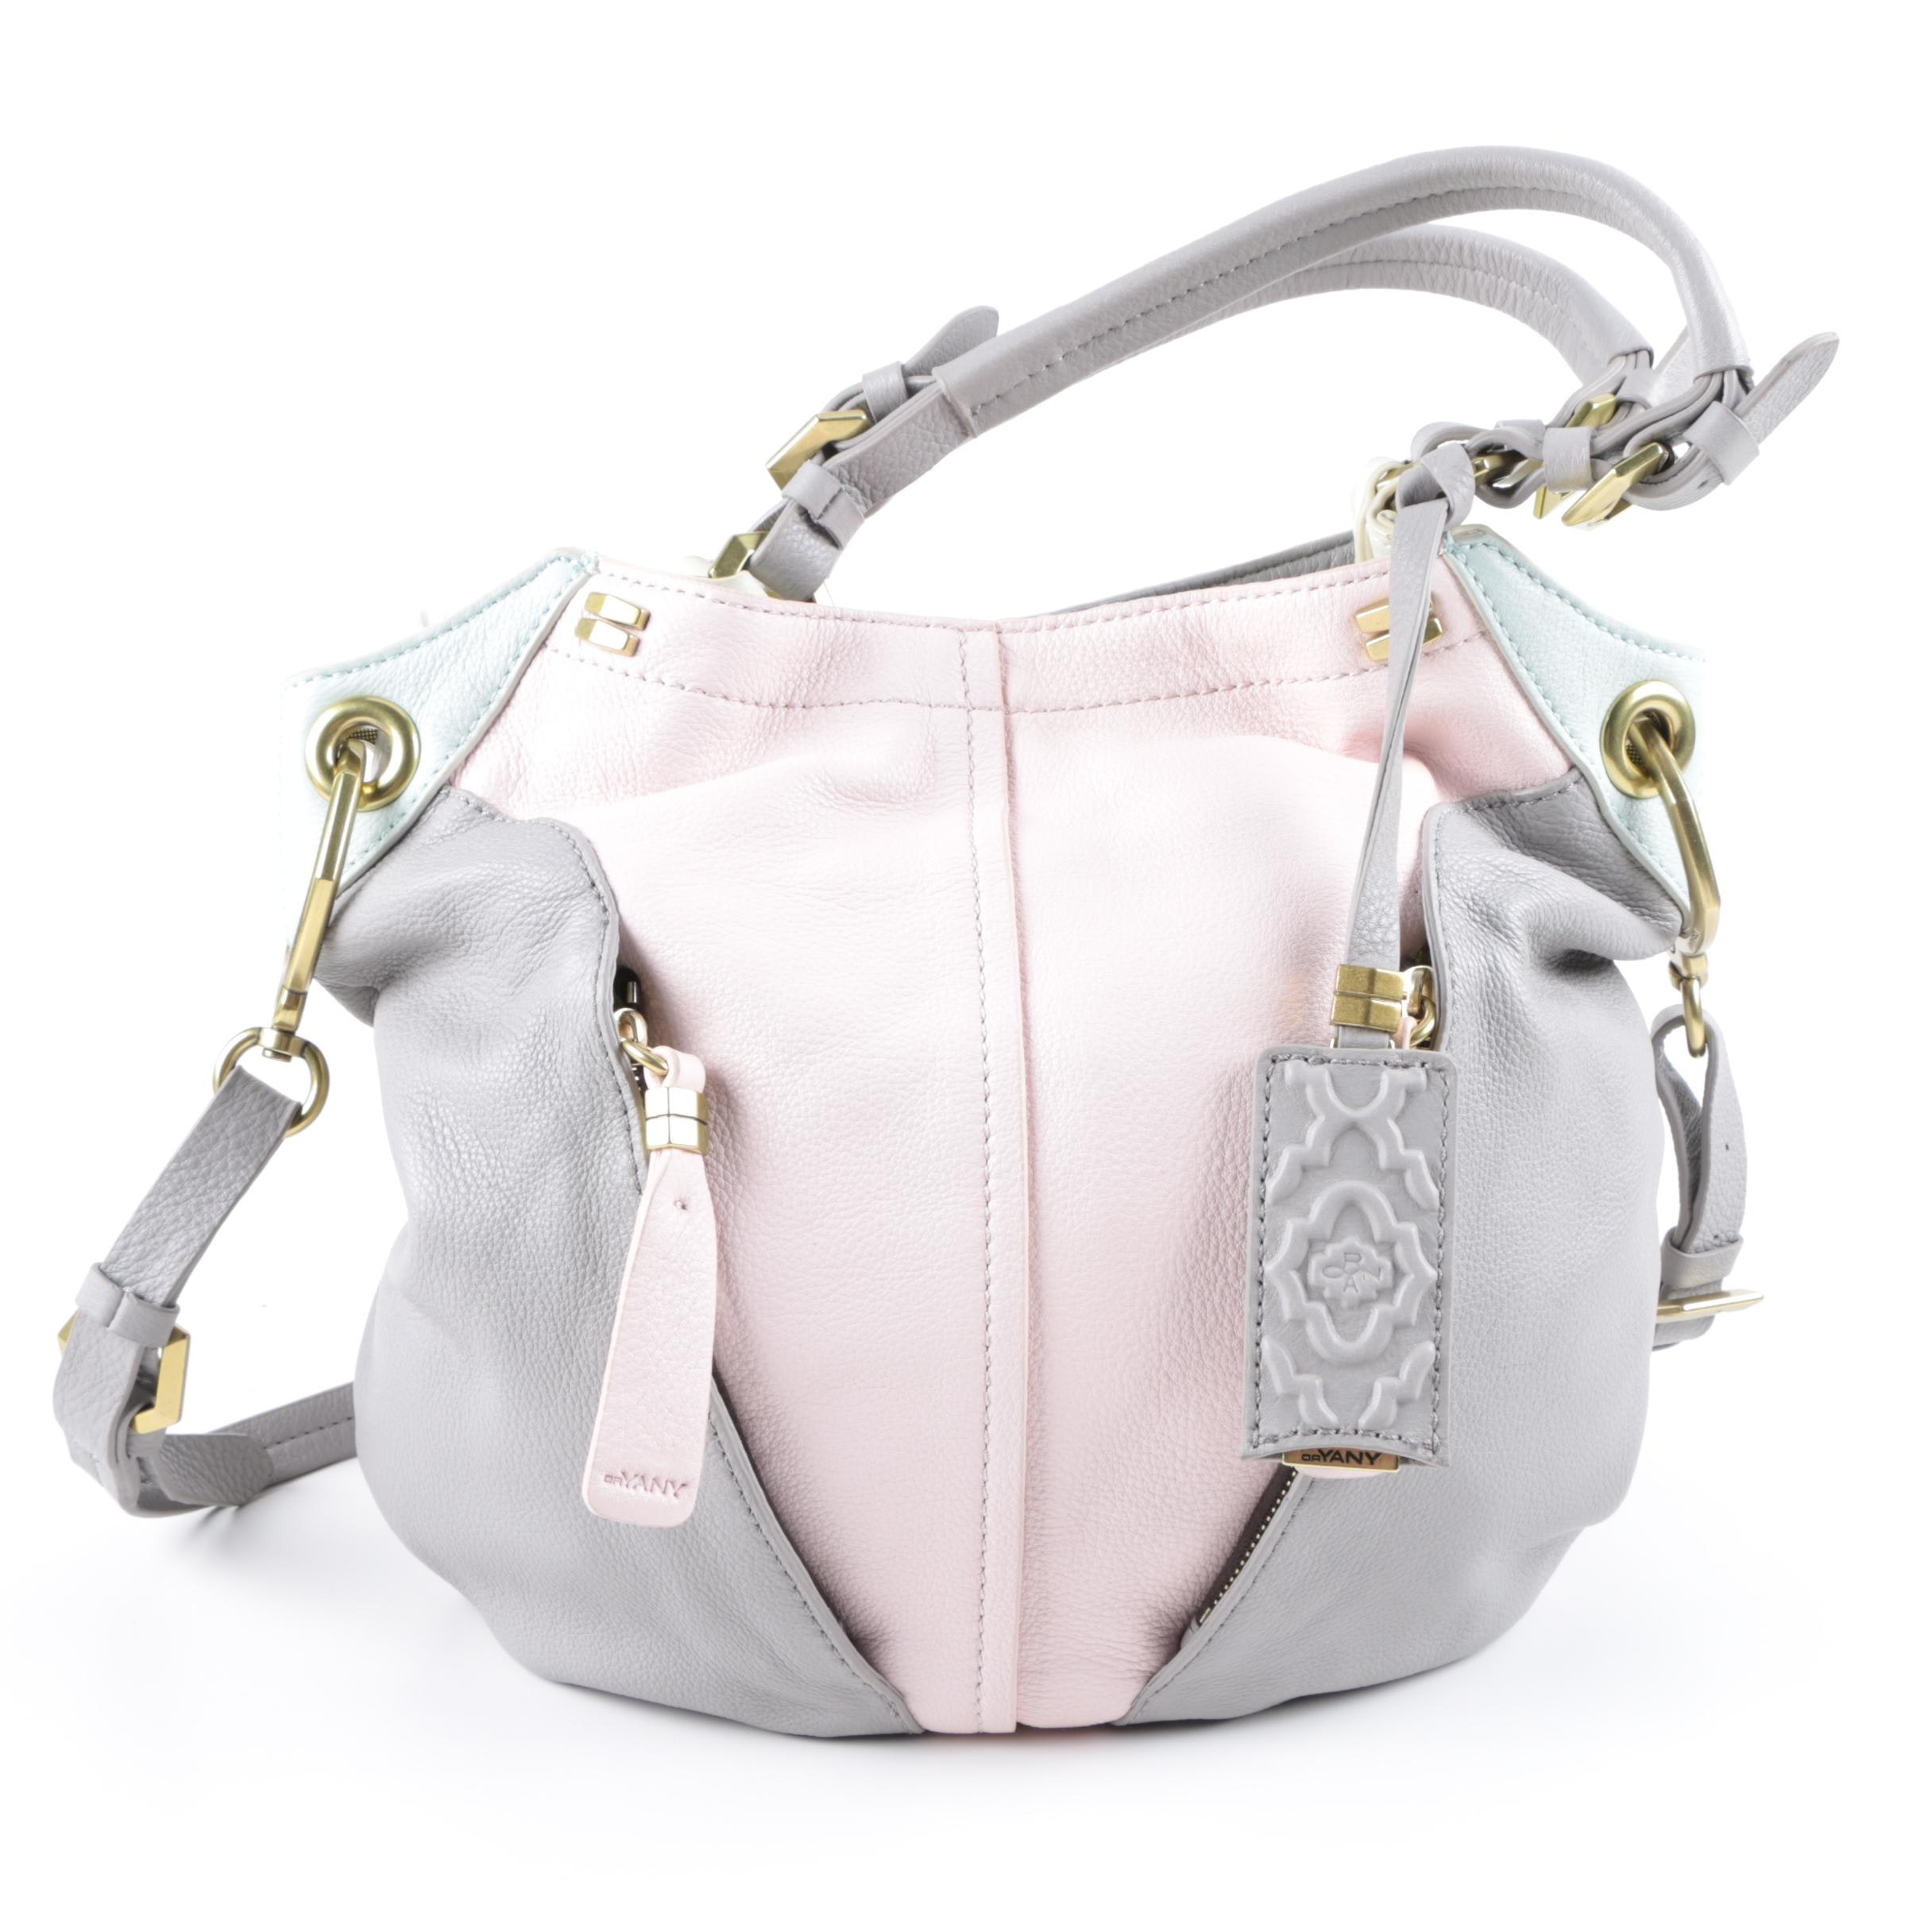 Oryany Gray and Pink Leather Convertible Handbag